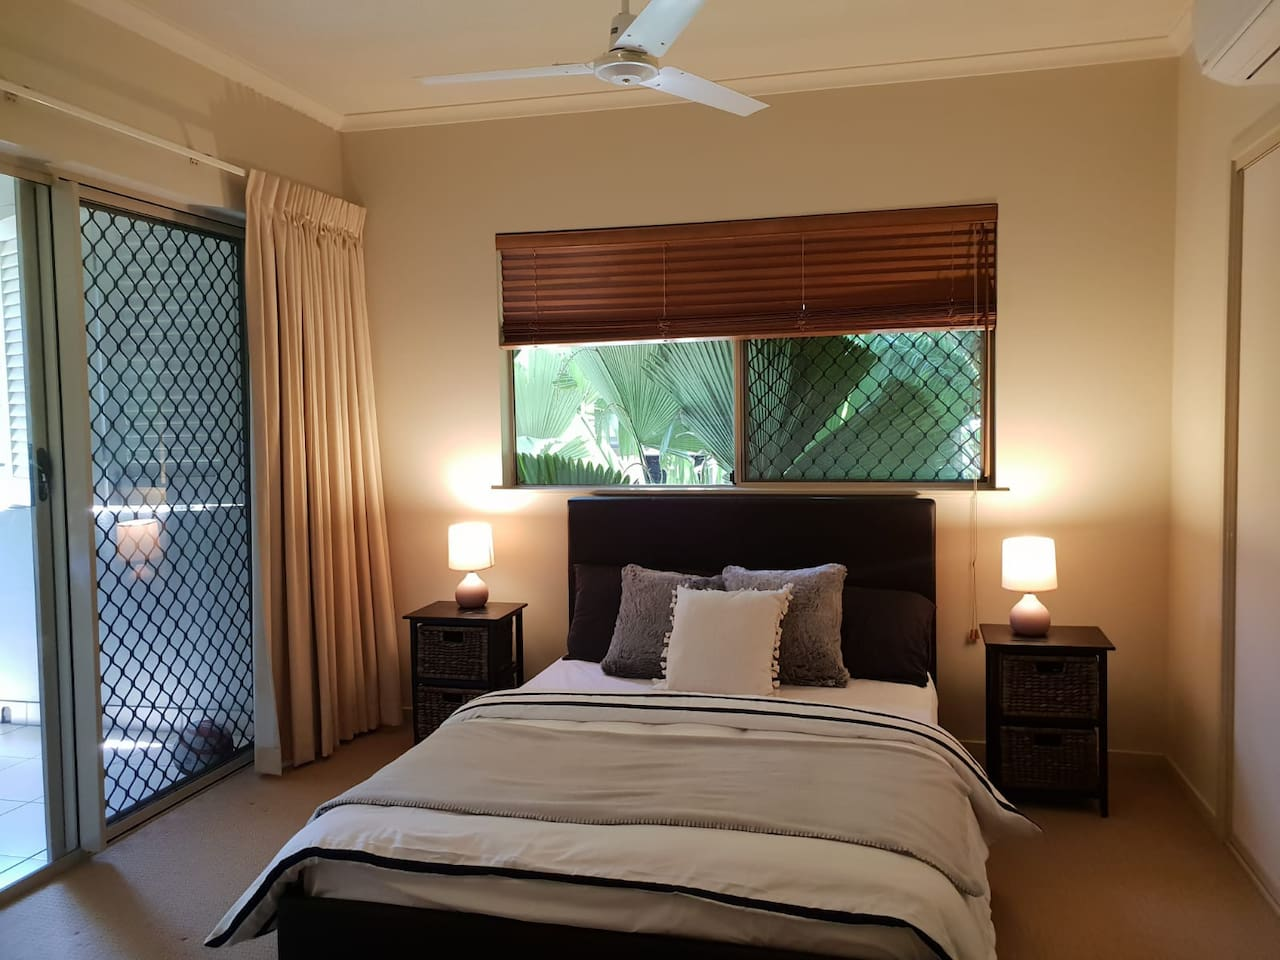 You room - The master bedroom with luxurious bed linen(Set1), two side tables for storage, 4 charging stations, aircon and carpeted flooring